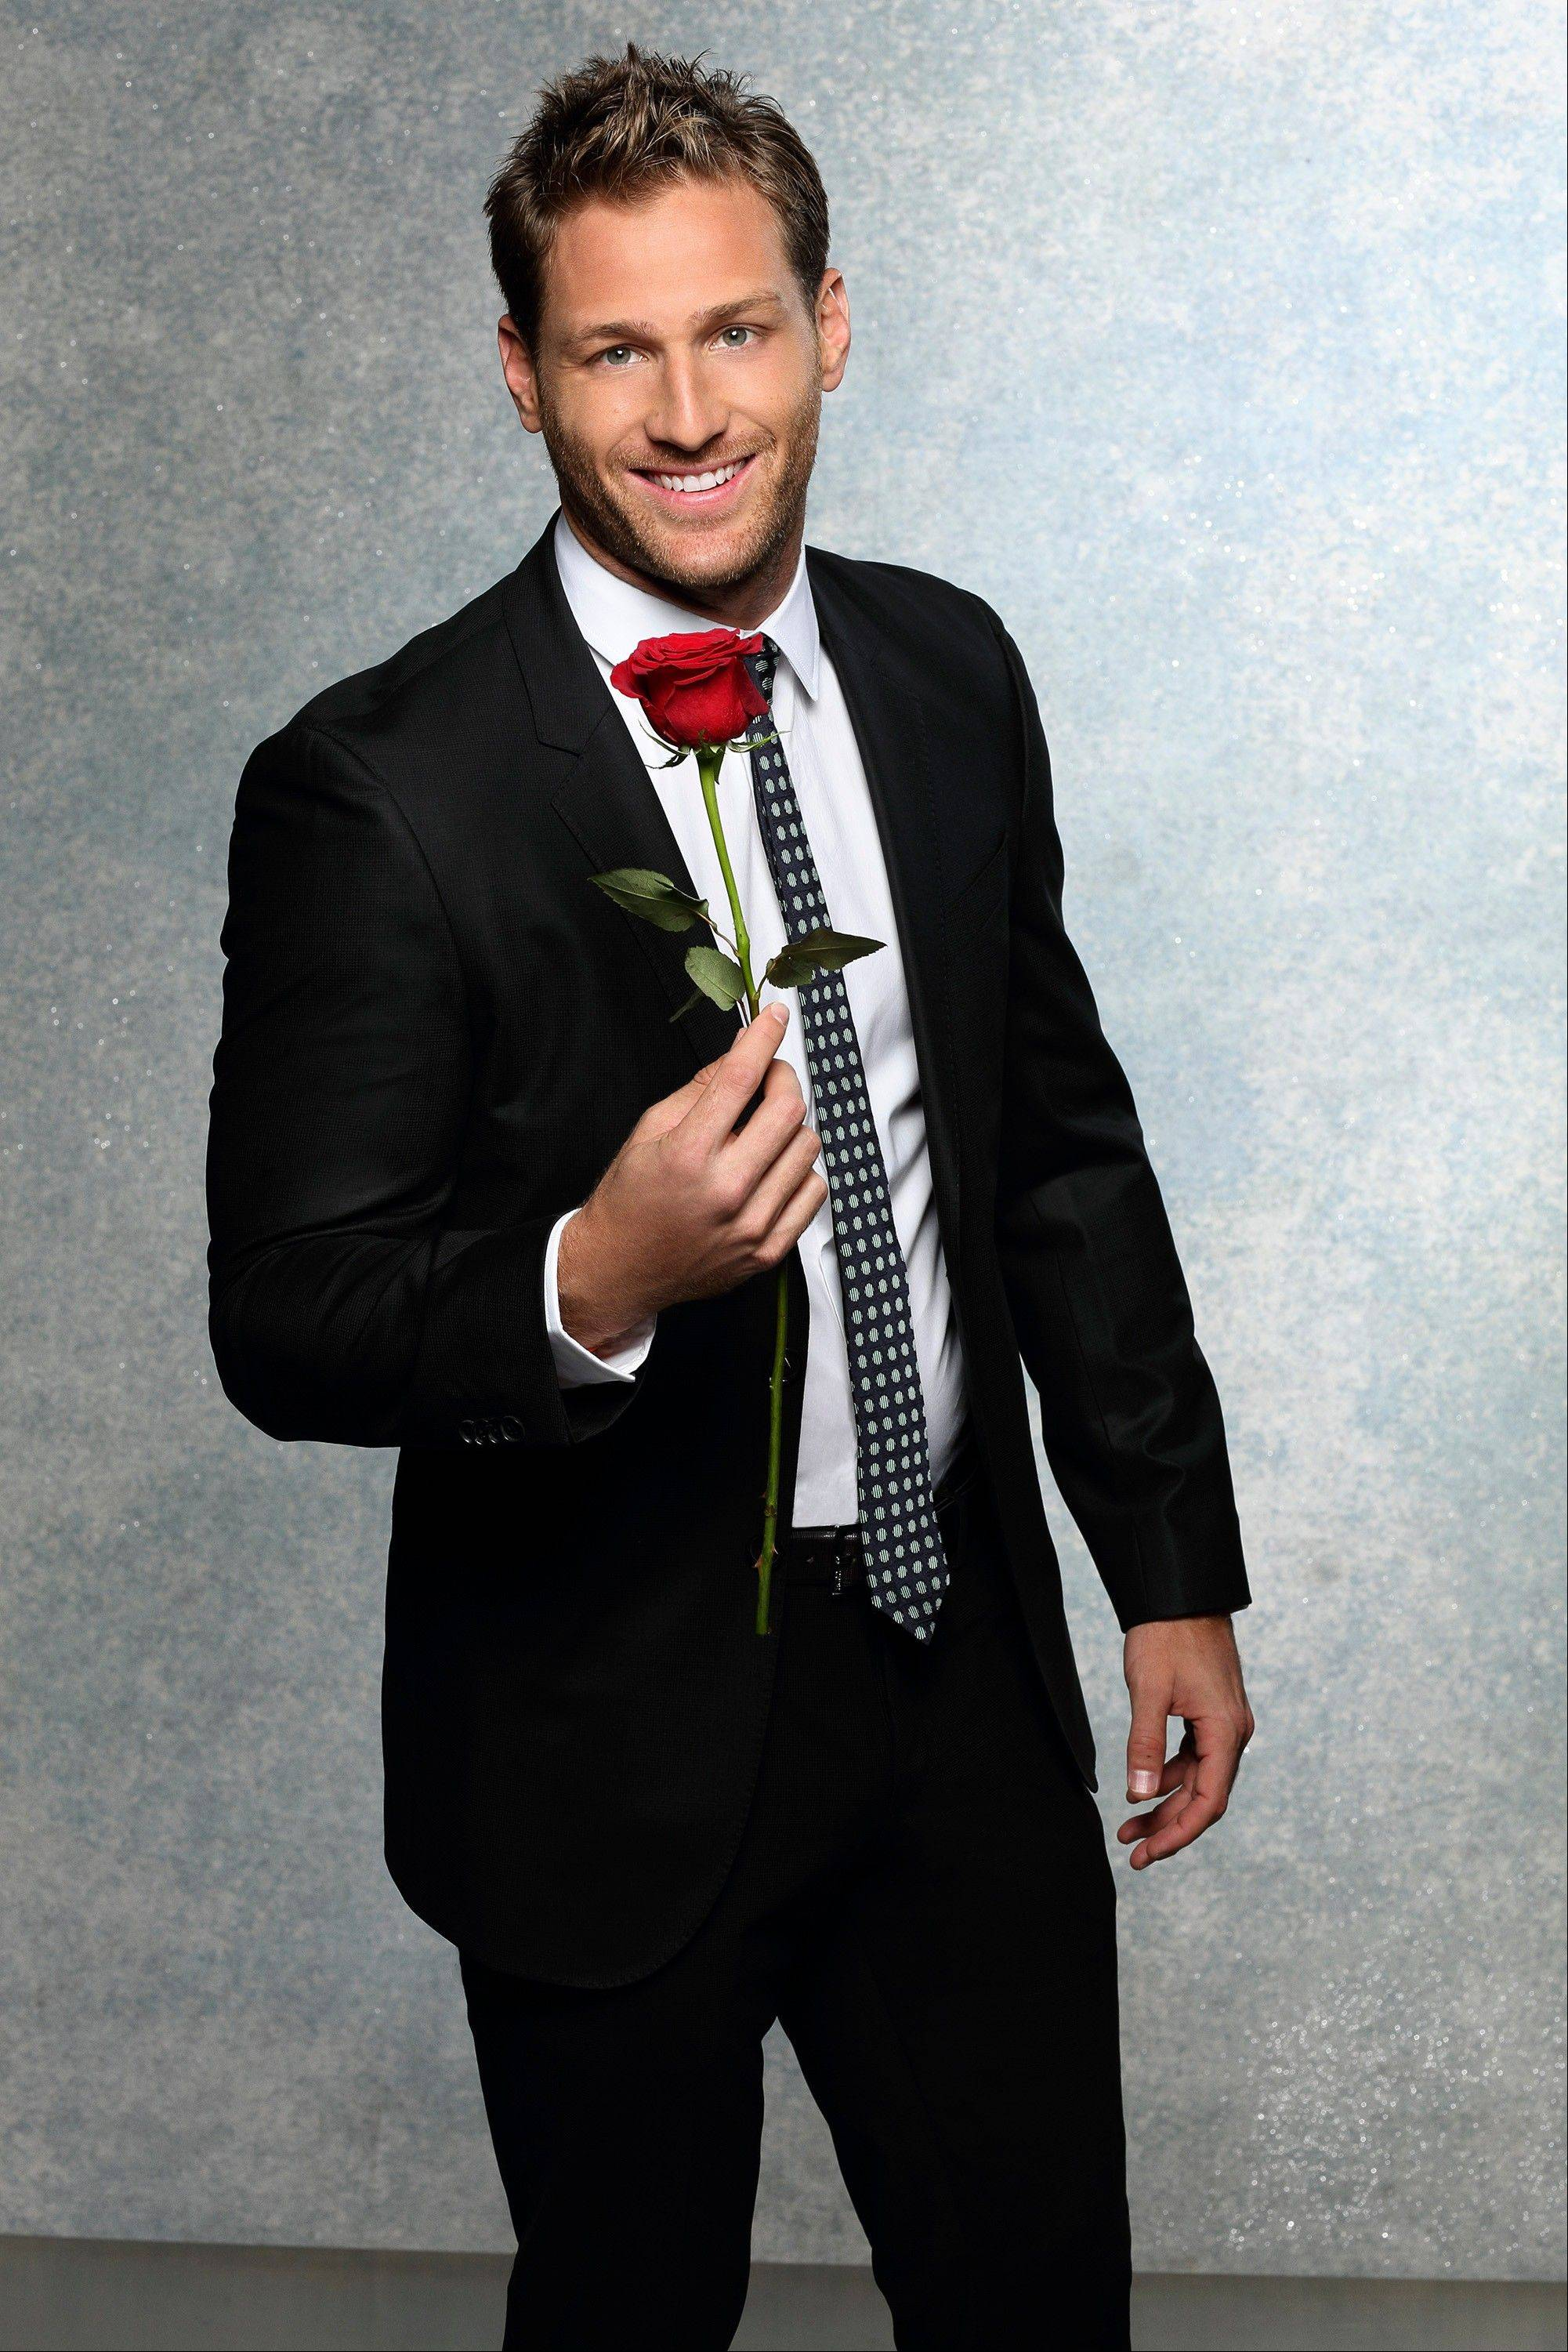 Juan Pablo Galavis, star of the 18th edition of �The Bachelor� airing Mondays on ABC, is the show�s first Latin bachelor.